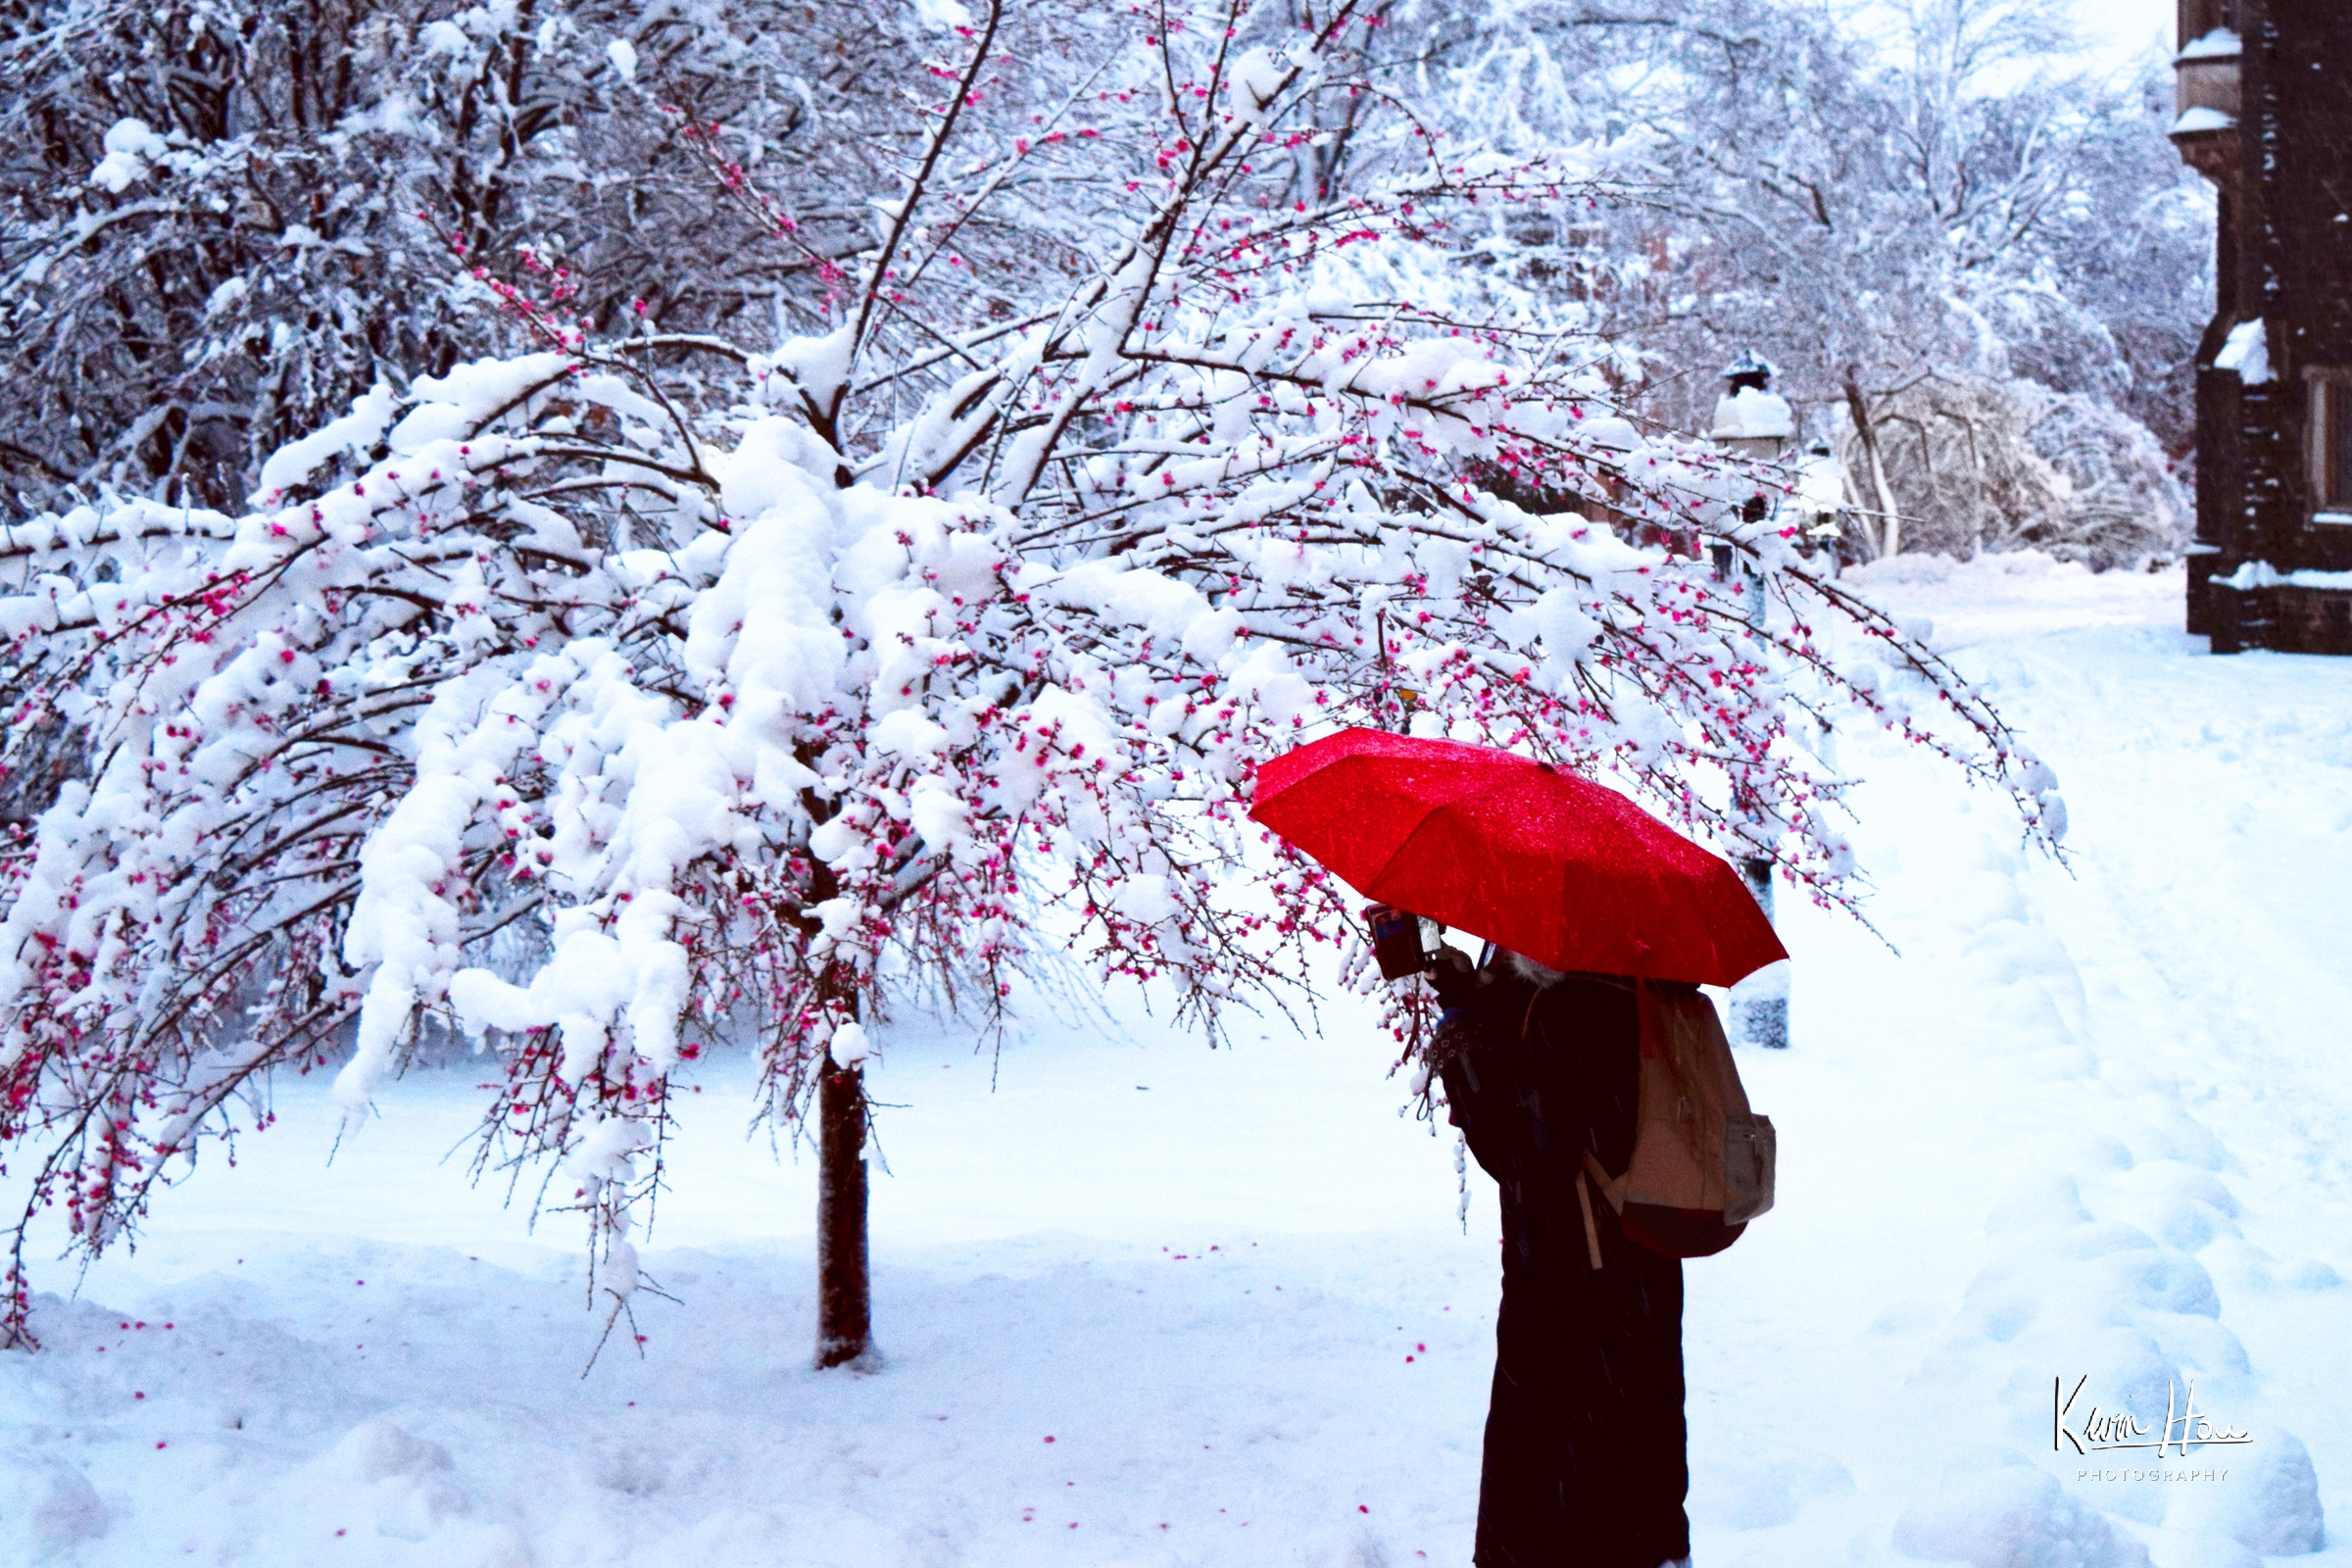 Woman with Red Umbrella in Snow